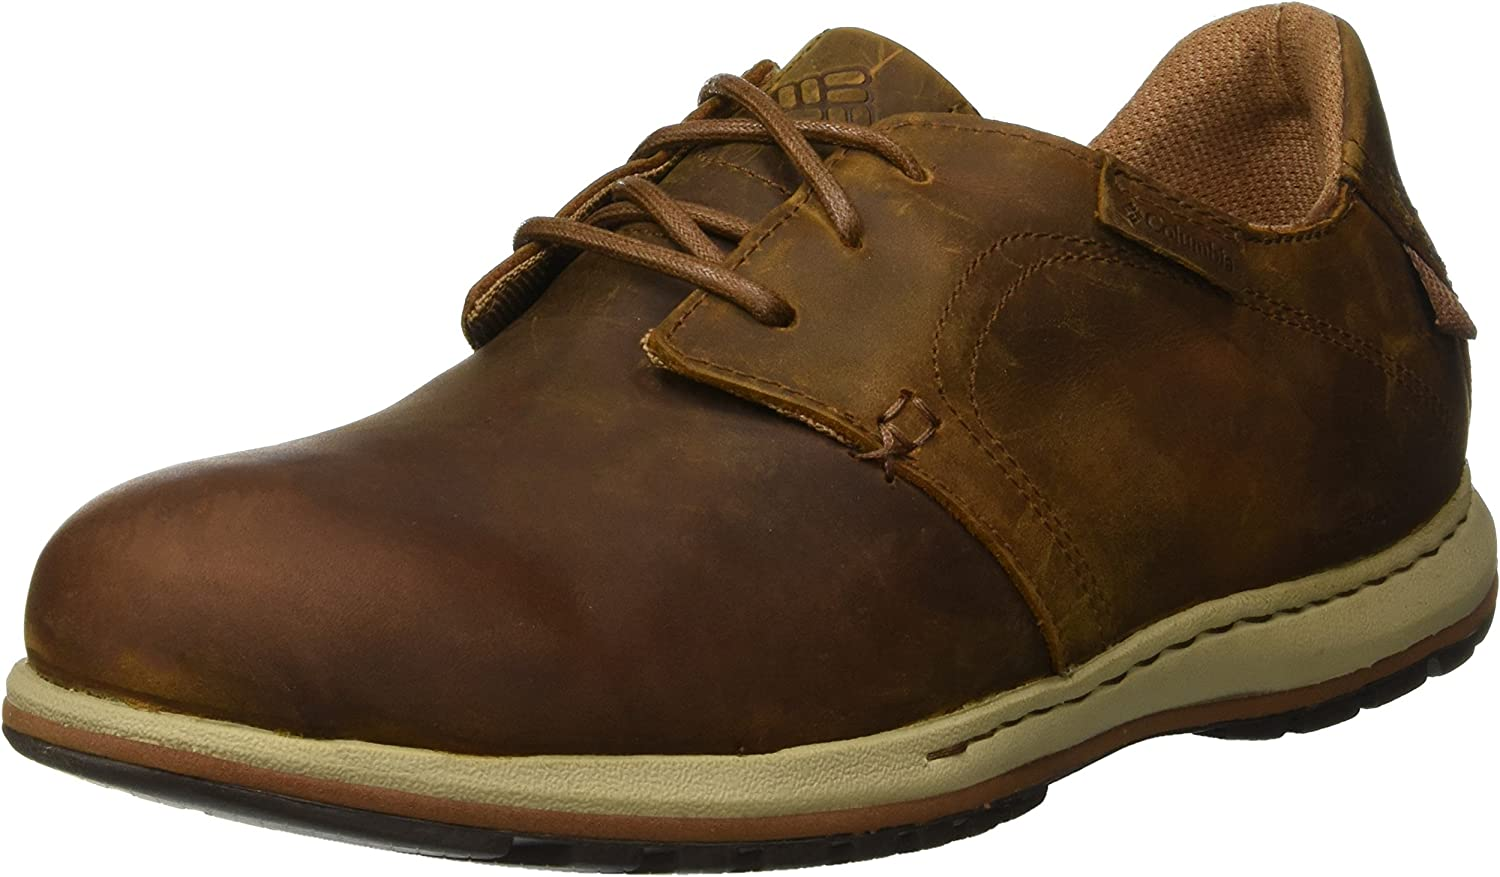 Columbia Men's Davenport Waterproof Leather Lace-up shoes